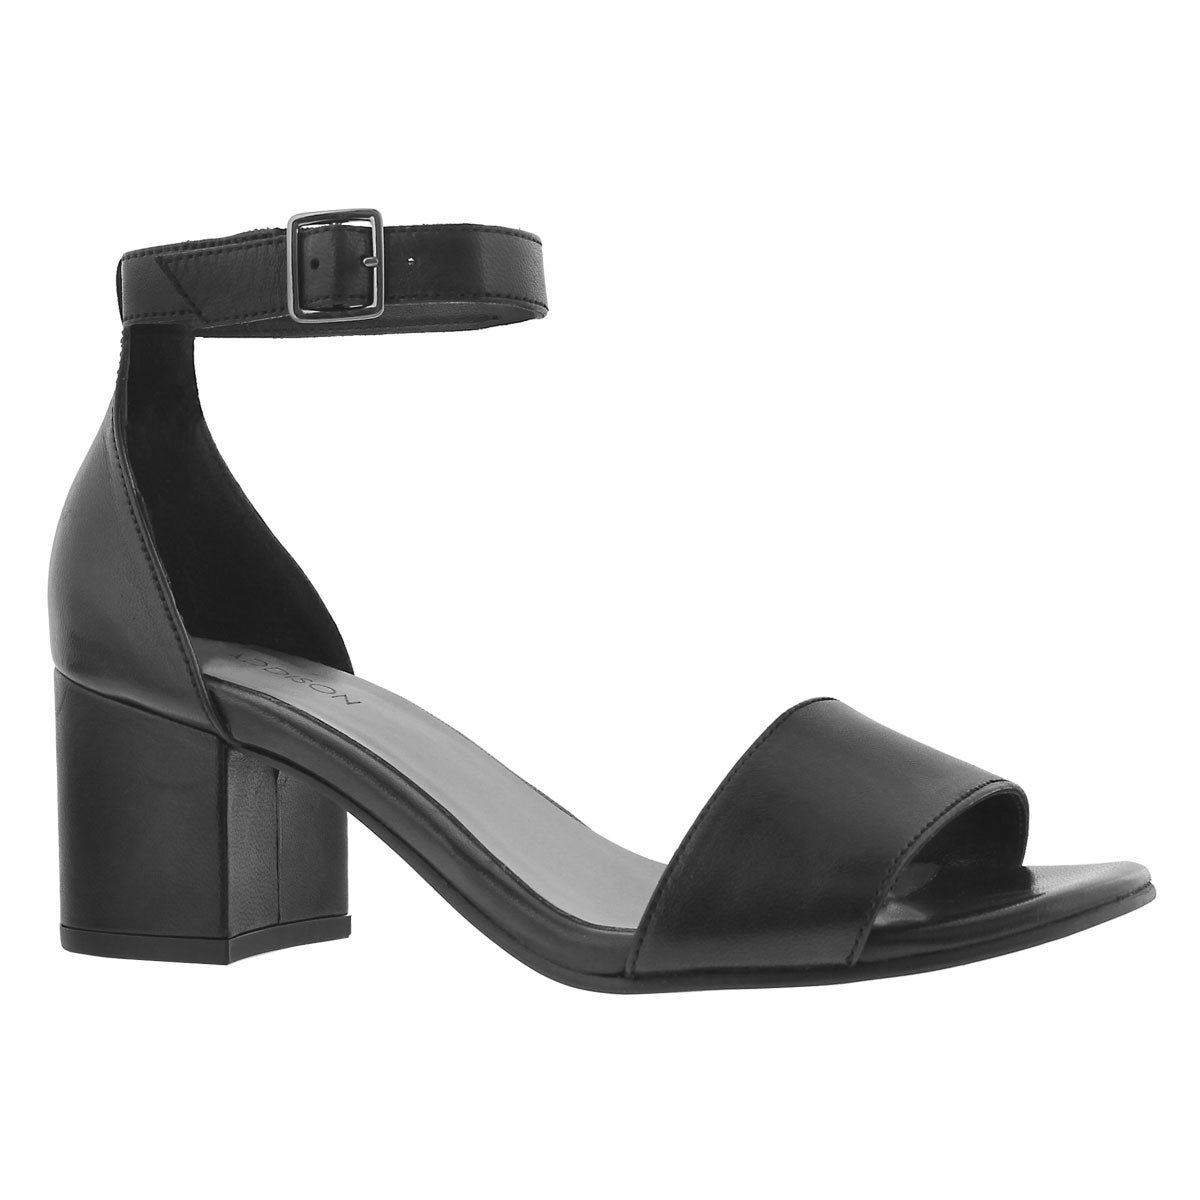 Women's FREDA black dress sandals